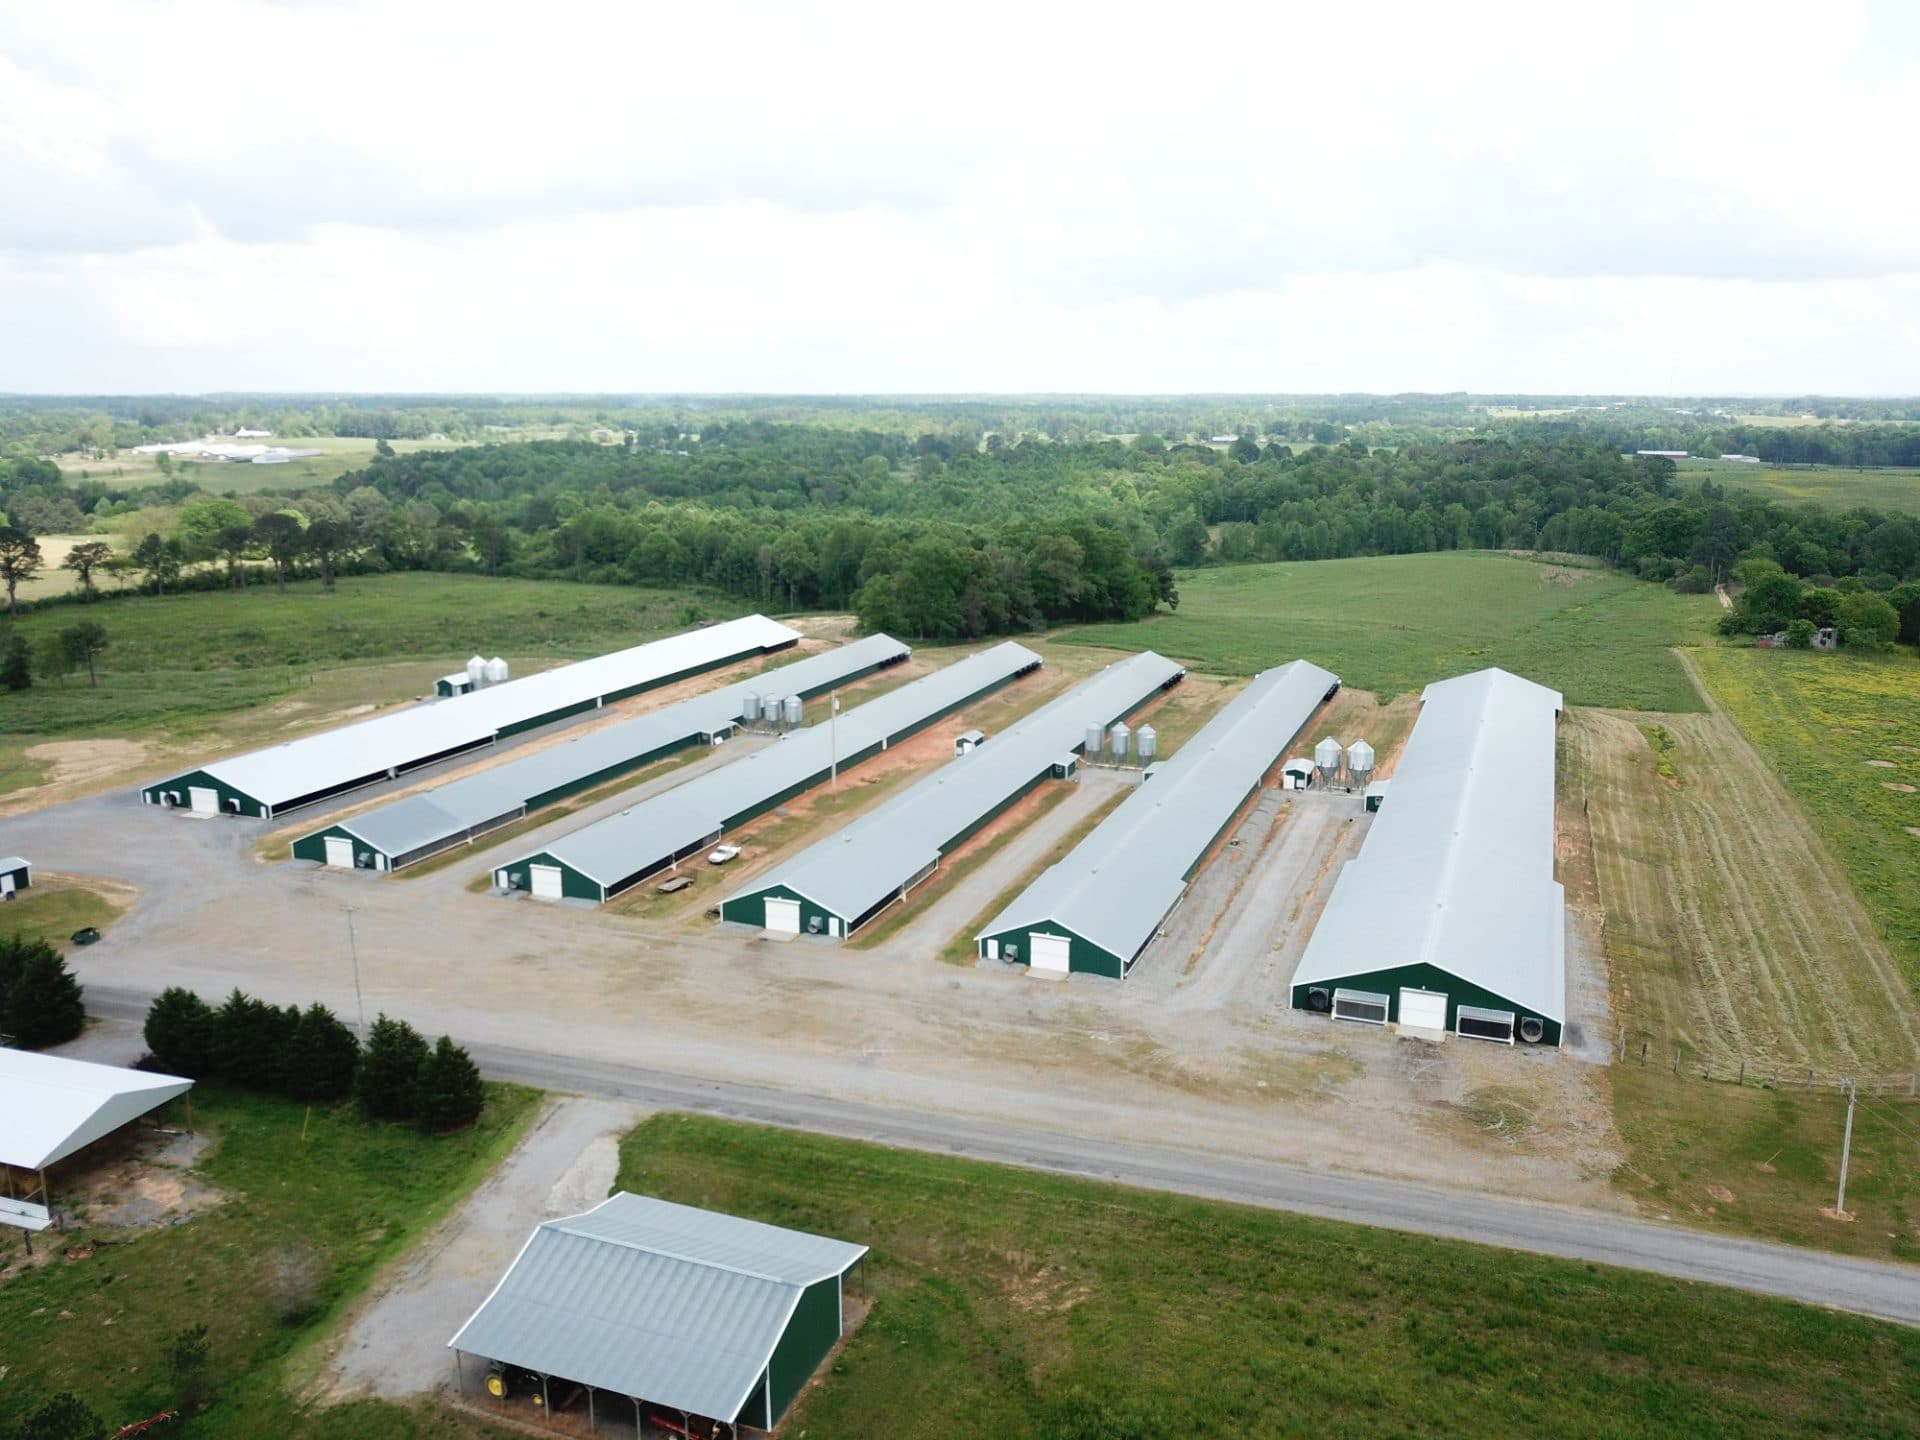 Large poultry house complex